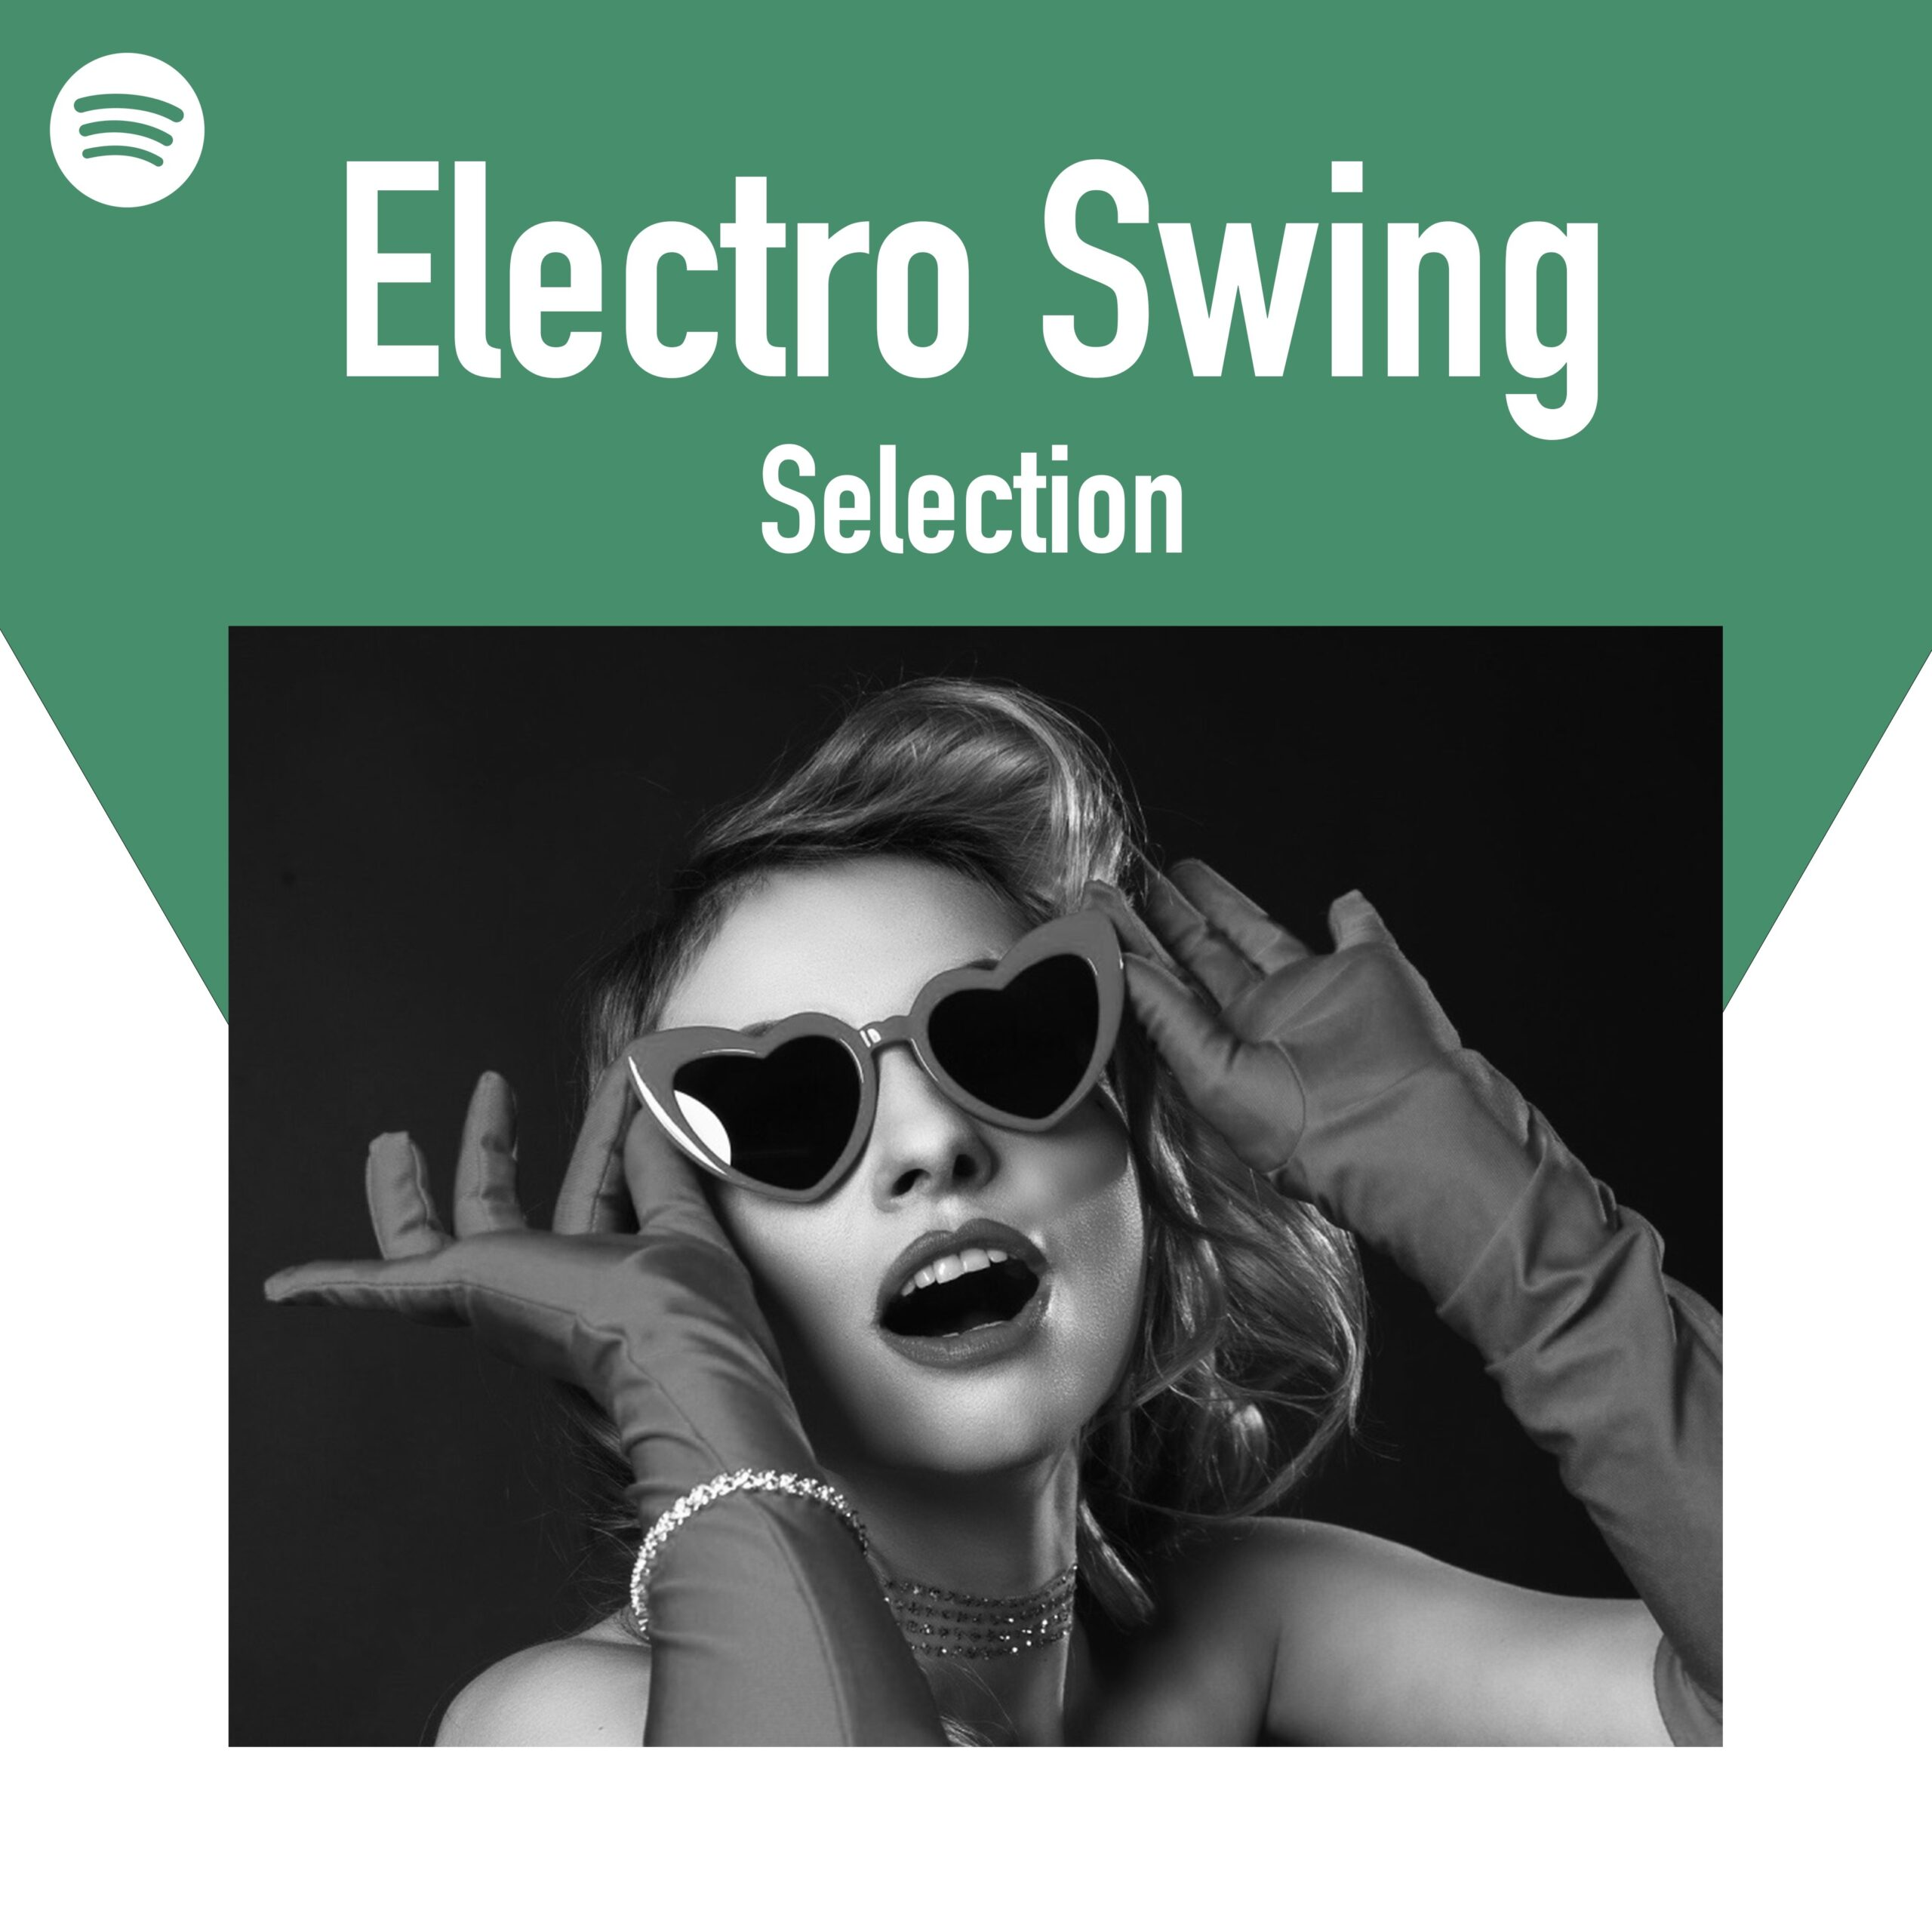 Electro Swing Selection